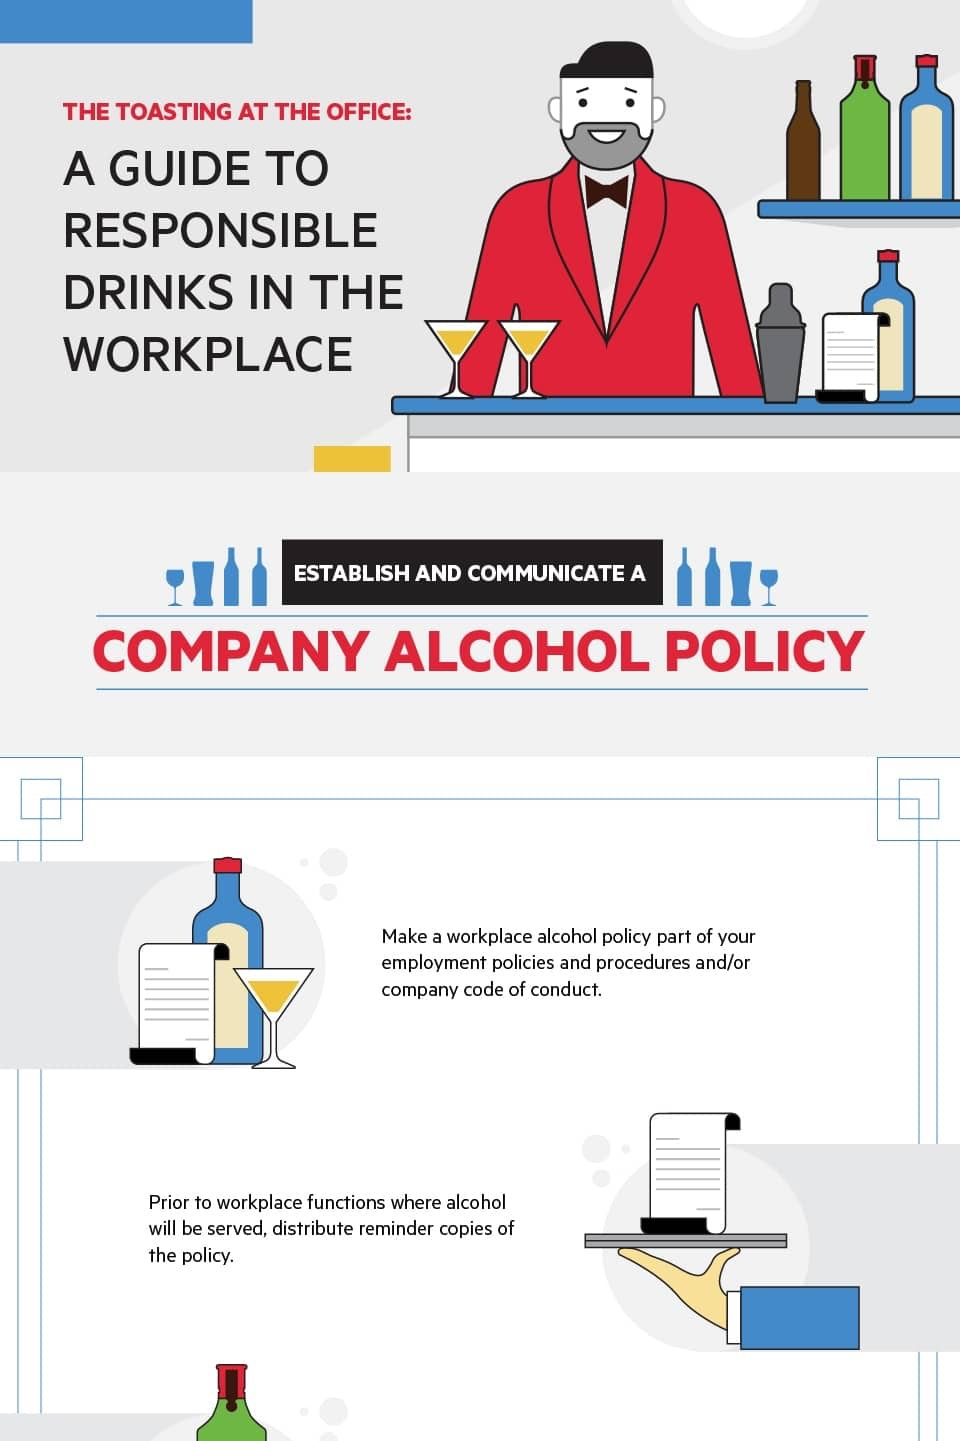 A Guide to Responsible Drinks in the Workplace